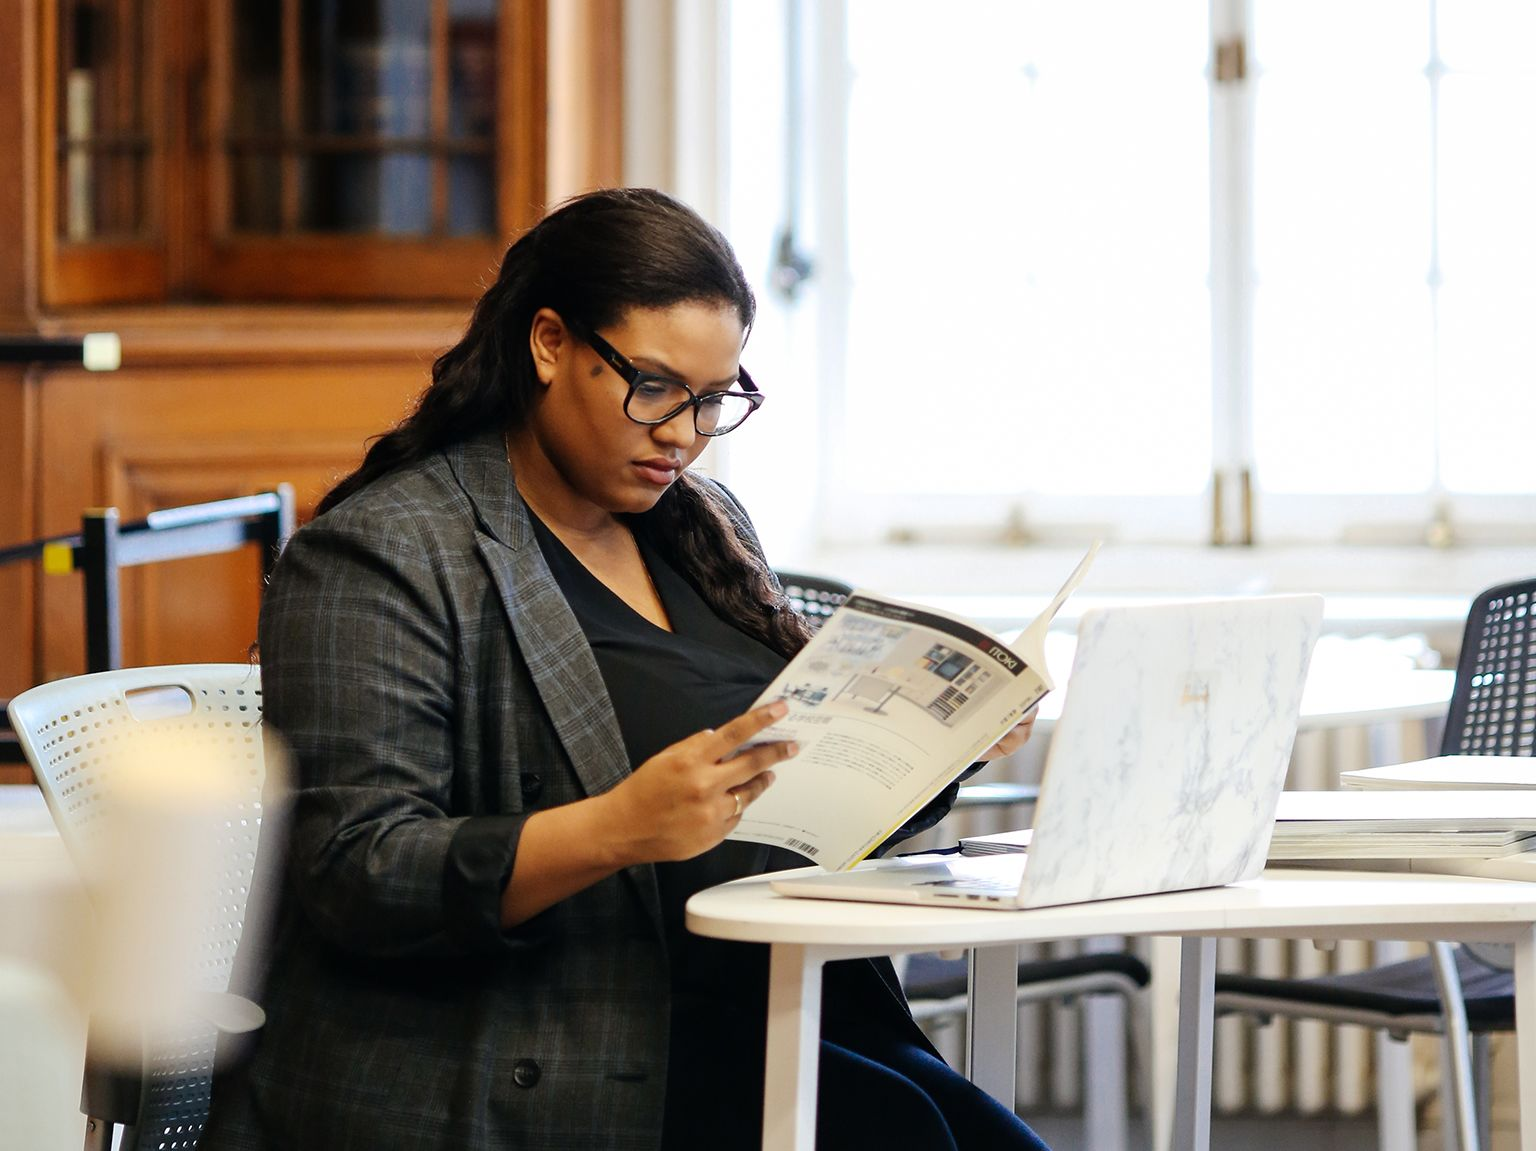 Student sitting at table in a bright library, looking through magazine and taking notes.